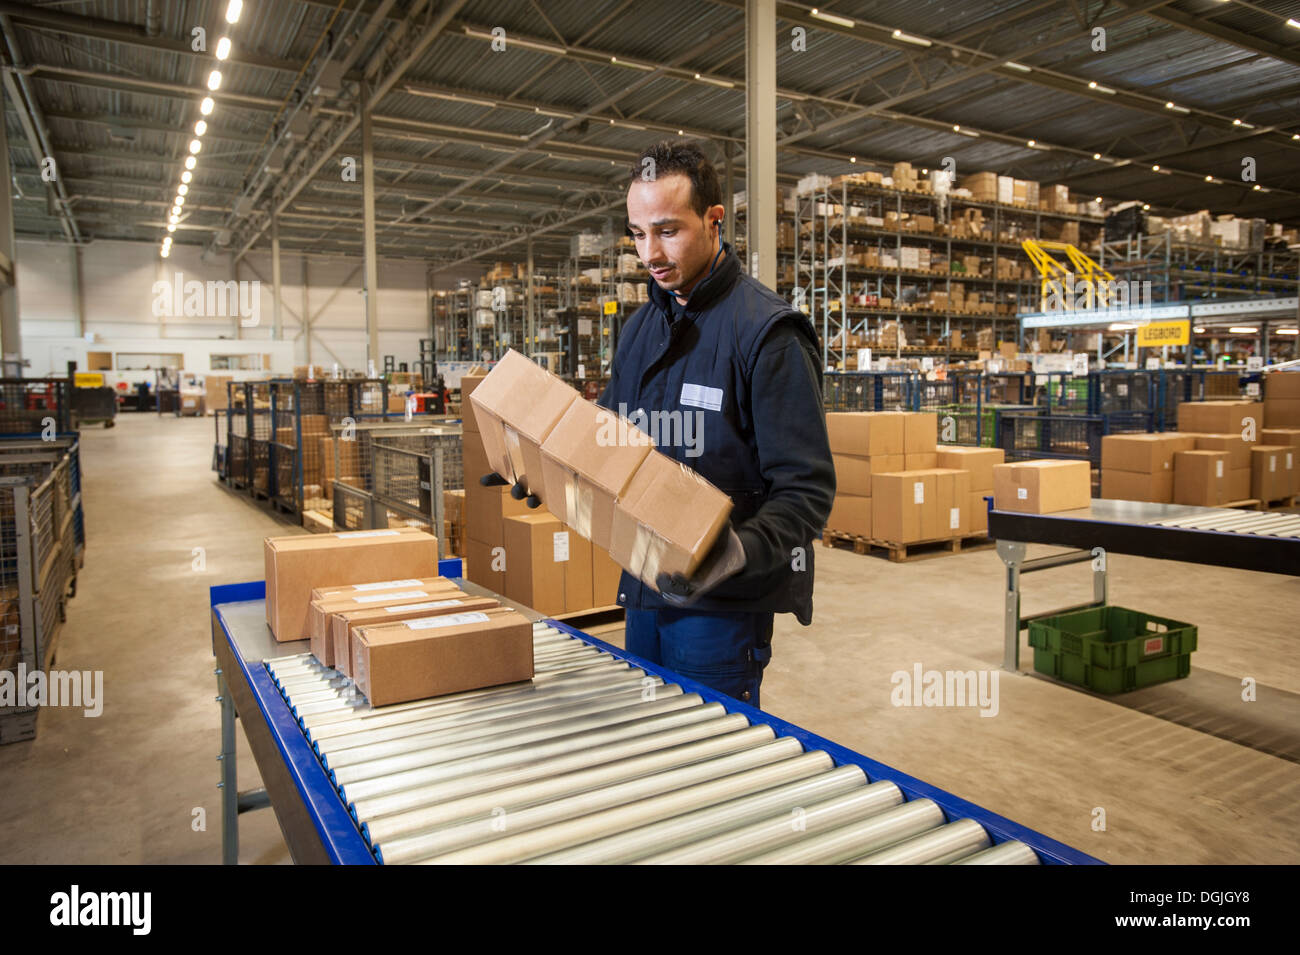 Male warehouse worker selecting cardboard boxes from conveyor belt - Stock Image